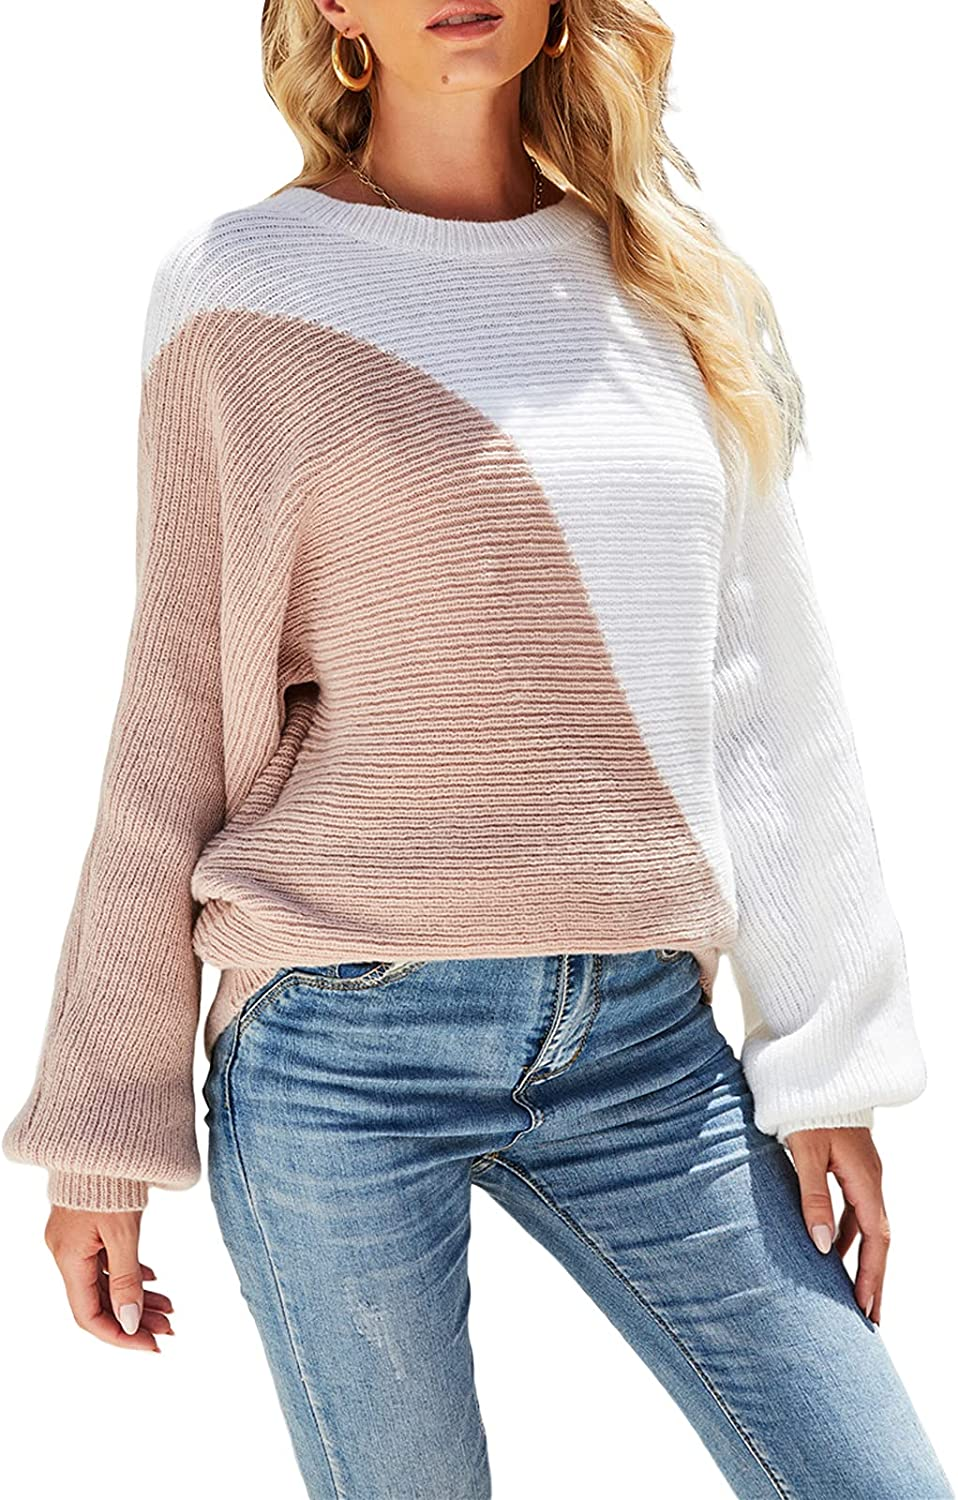 Women's Patchwork Sweater Long Sleeves Save money Neck Loose Round Knitted supreme